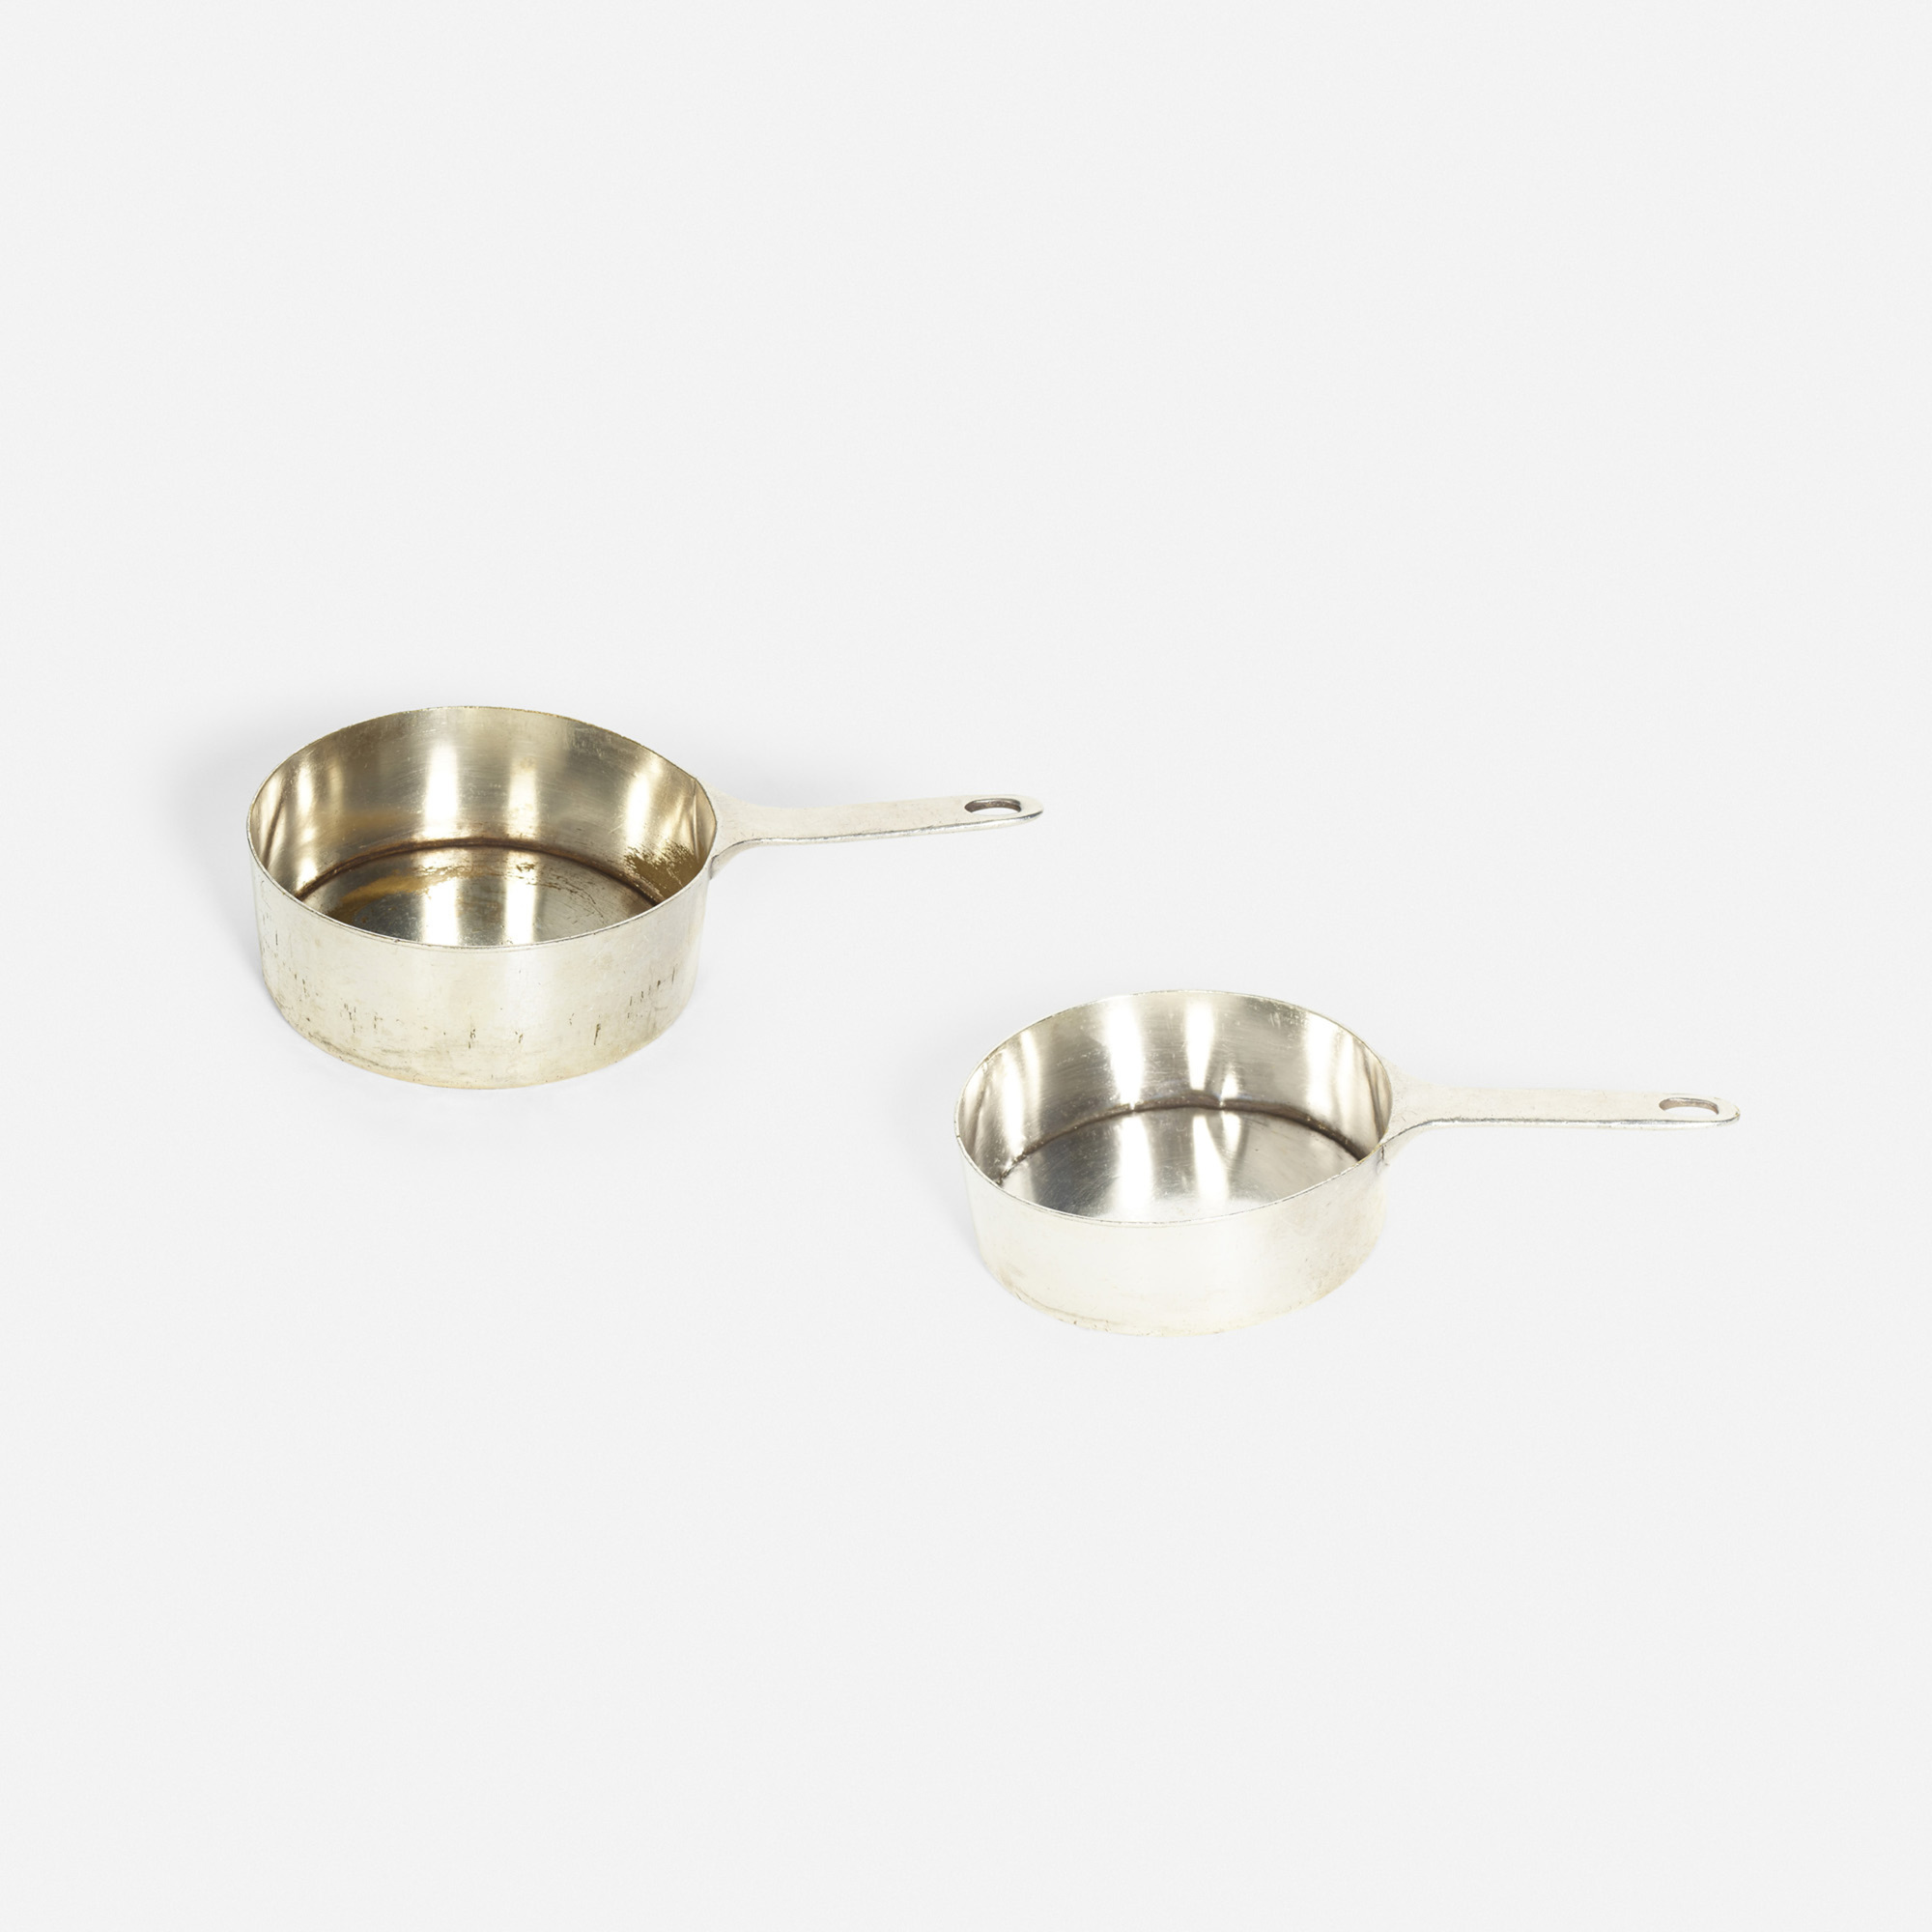 873: Garth and Ada Louise Huxtable / sauce pots from the kitchen of The Four Seasons, set of two (1 of 1)